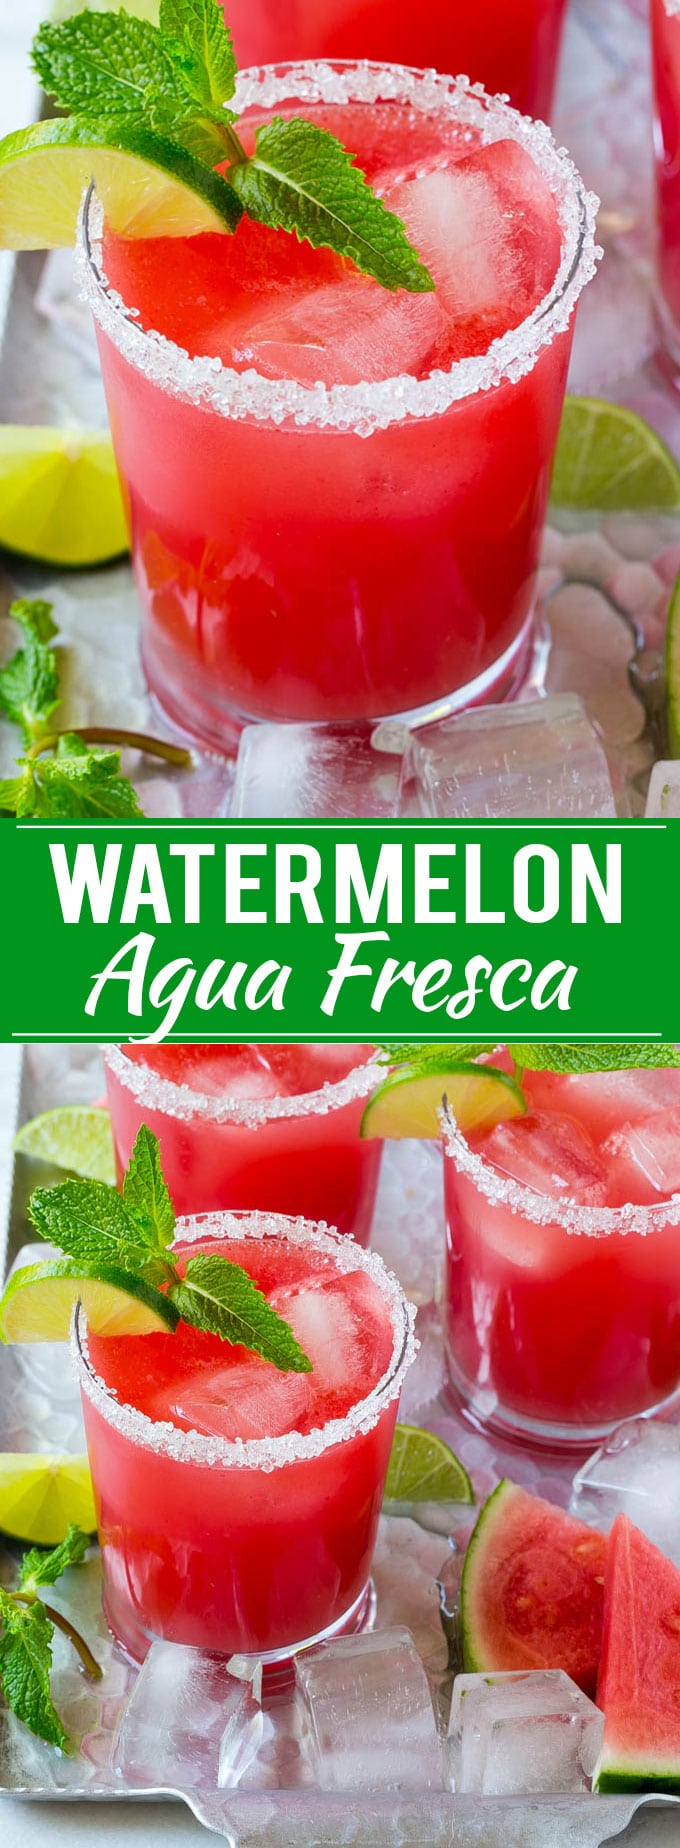 Watermelon Agua Fresca | Watermelon Drink | Agua Fresca Recipe #watermelon #aguafresca #watermelondrink #drink #dinneratthezoo #summer